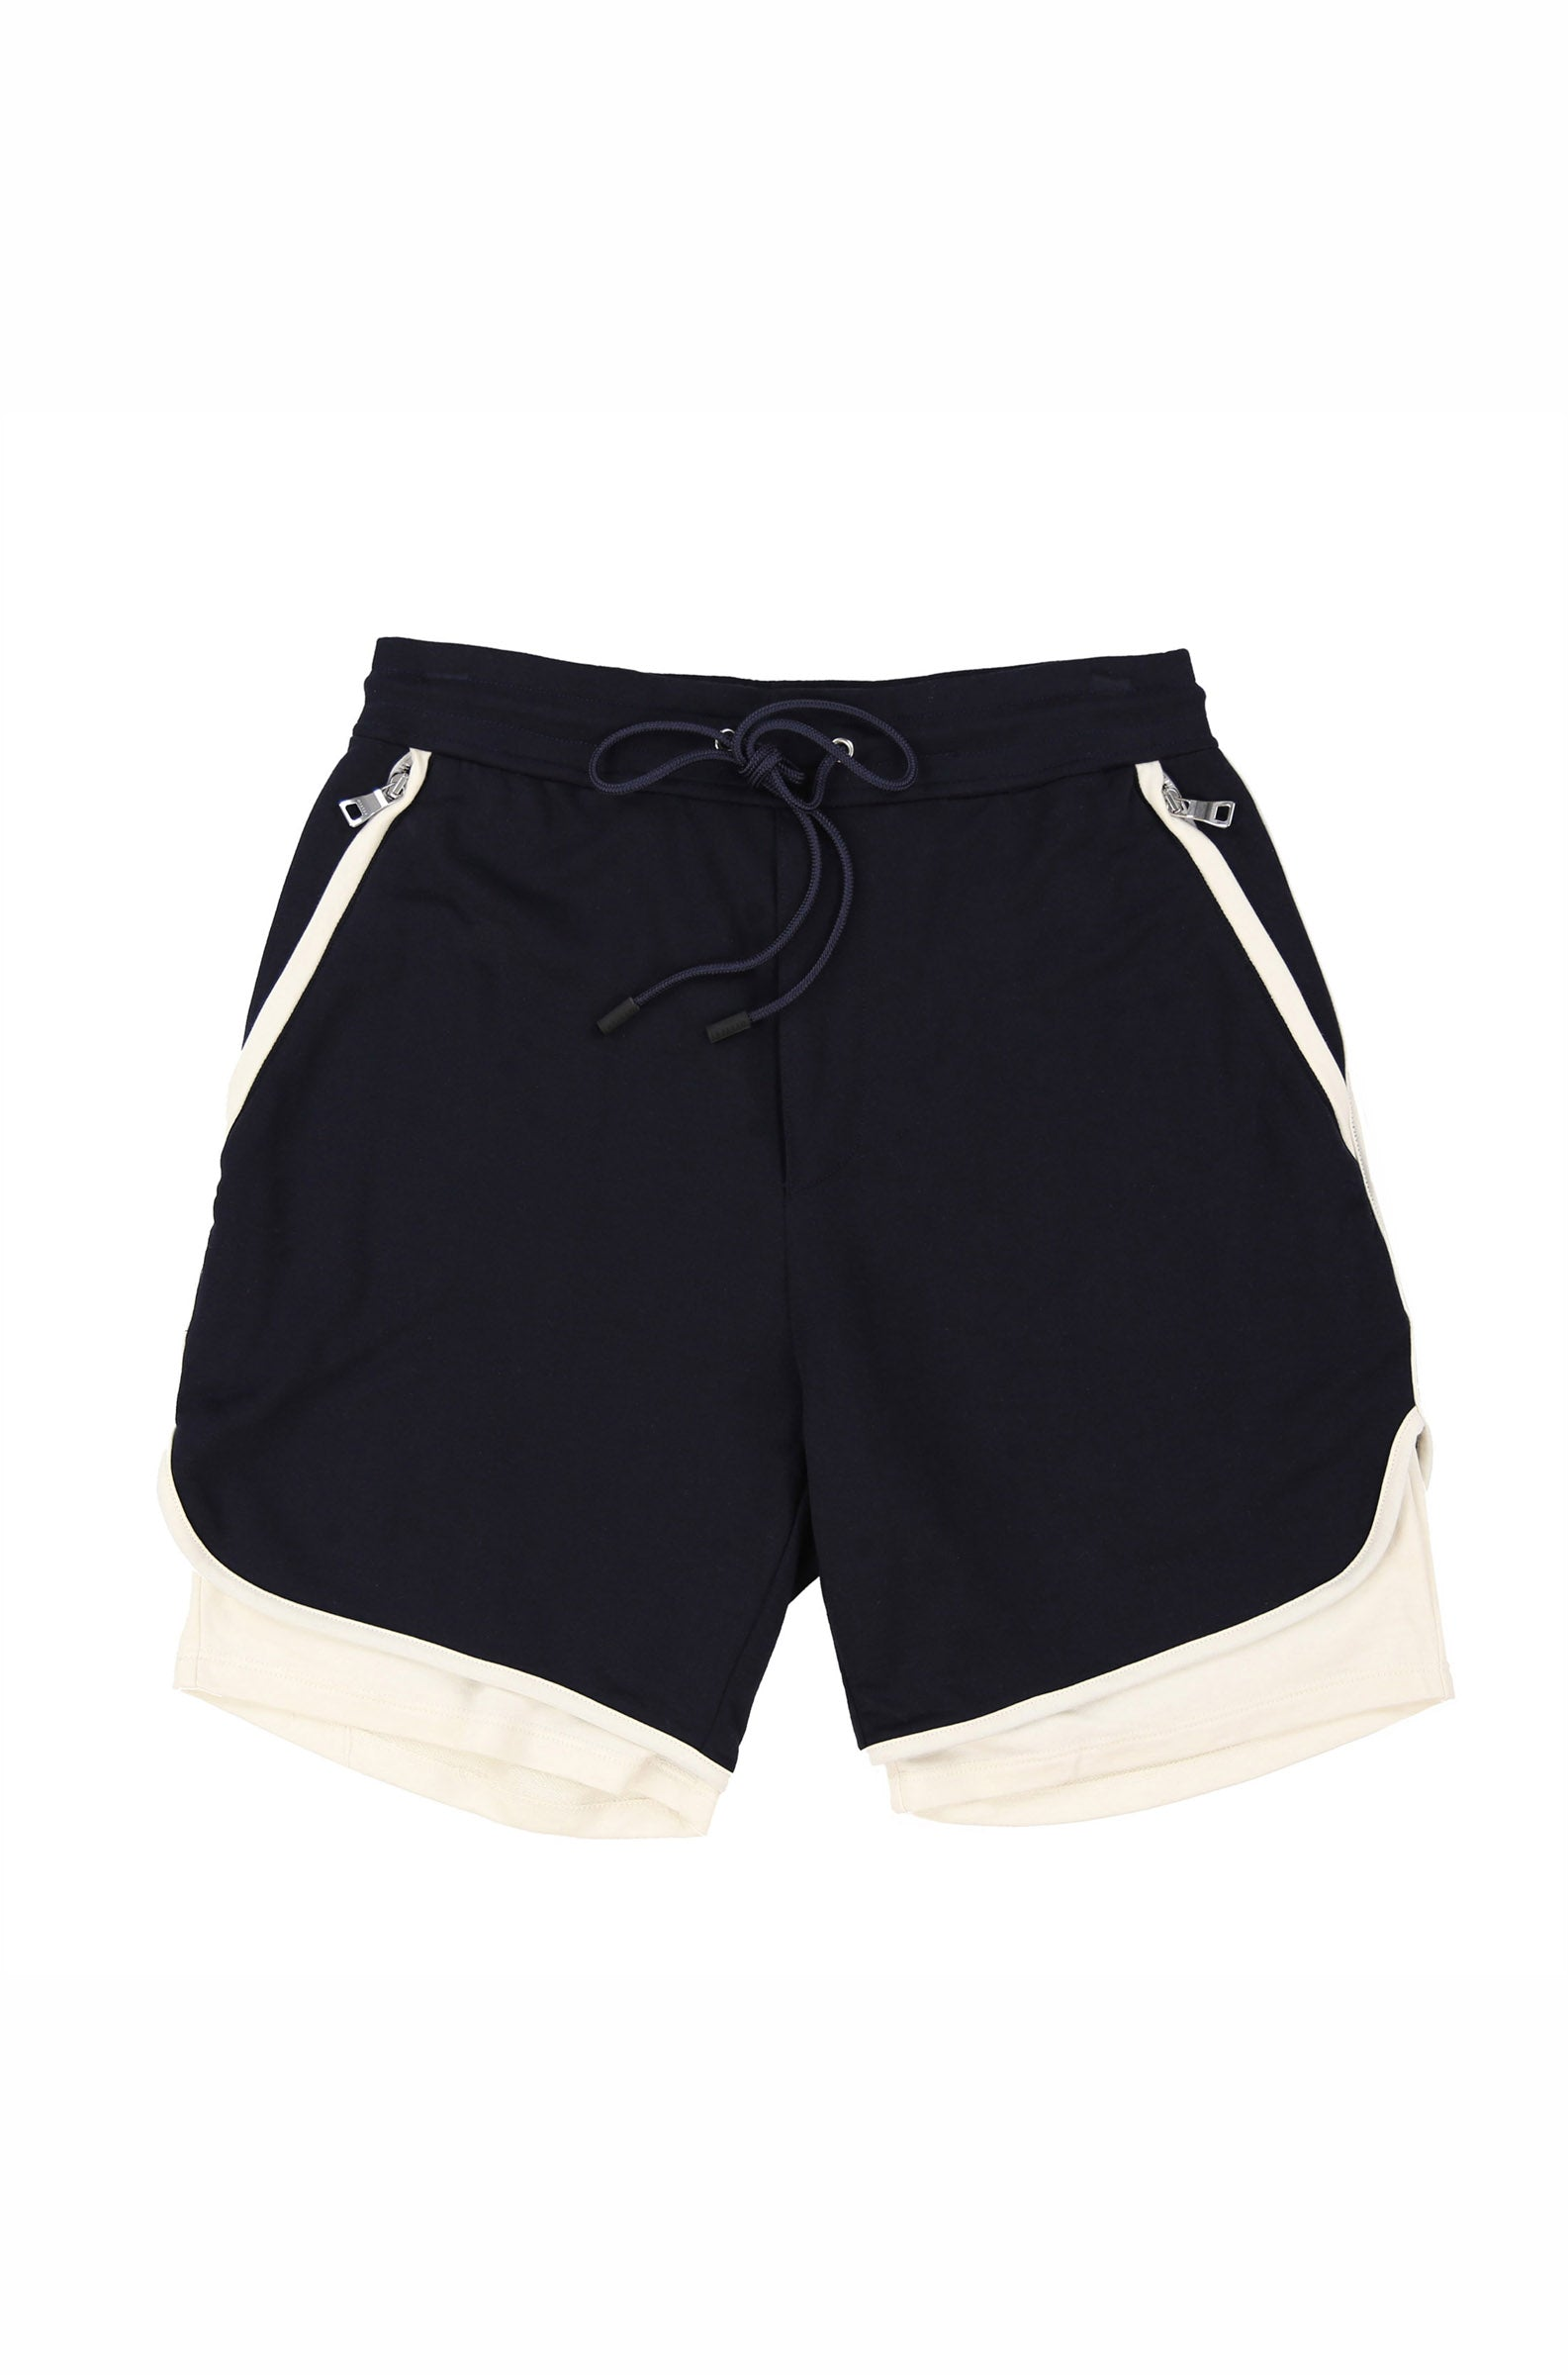 Flushing Meadows short (navy)